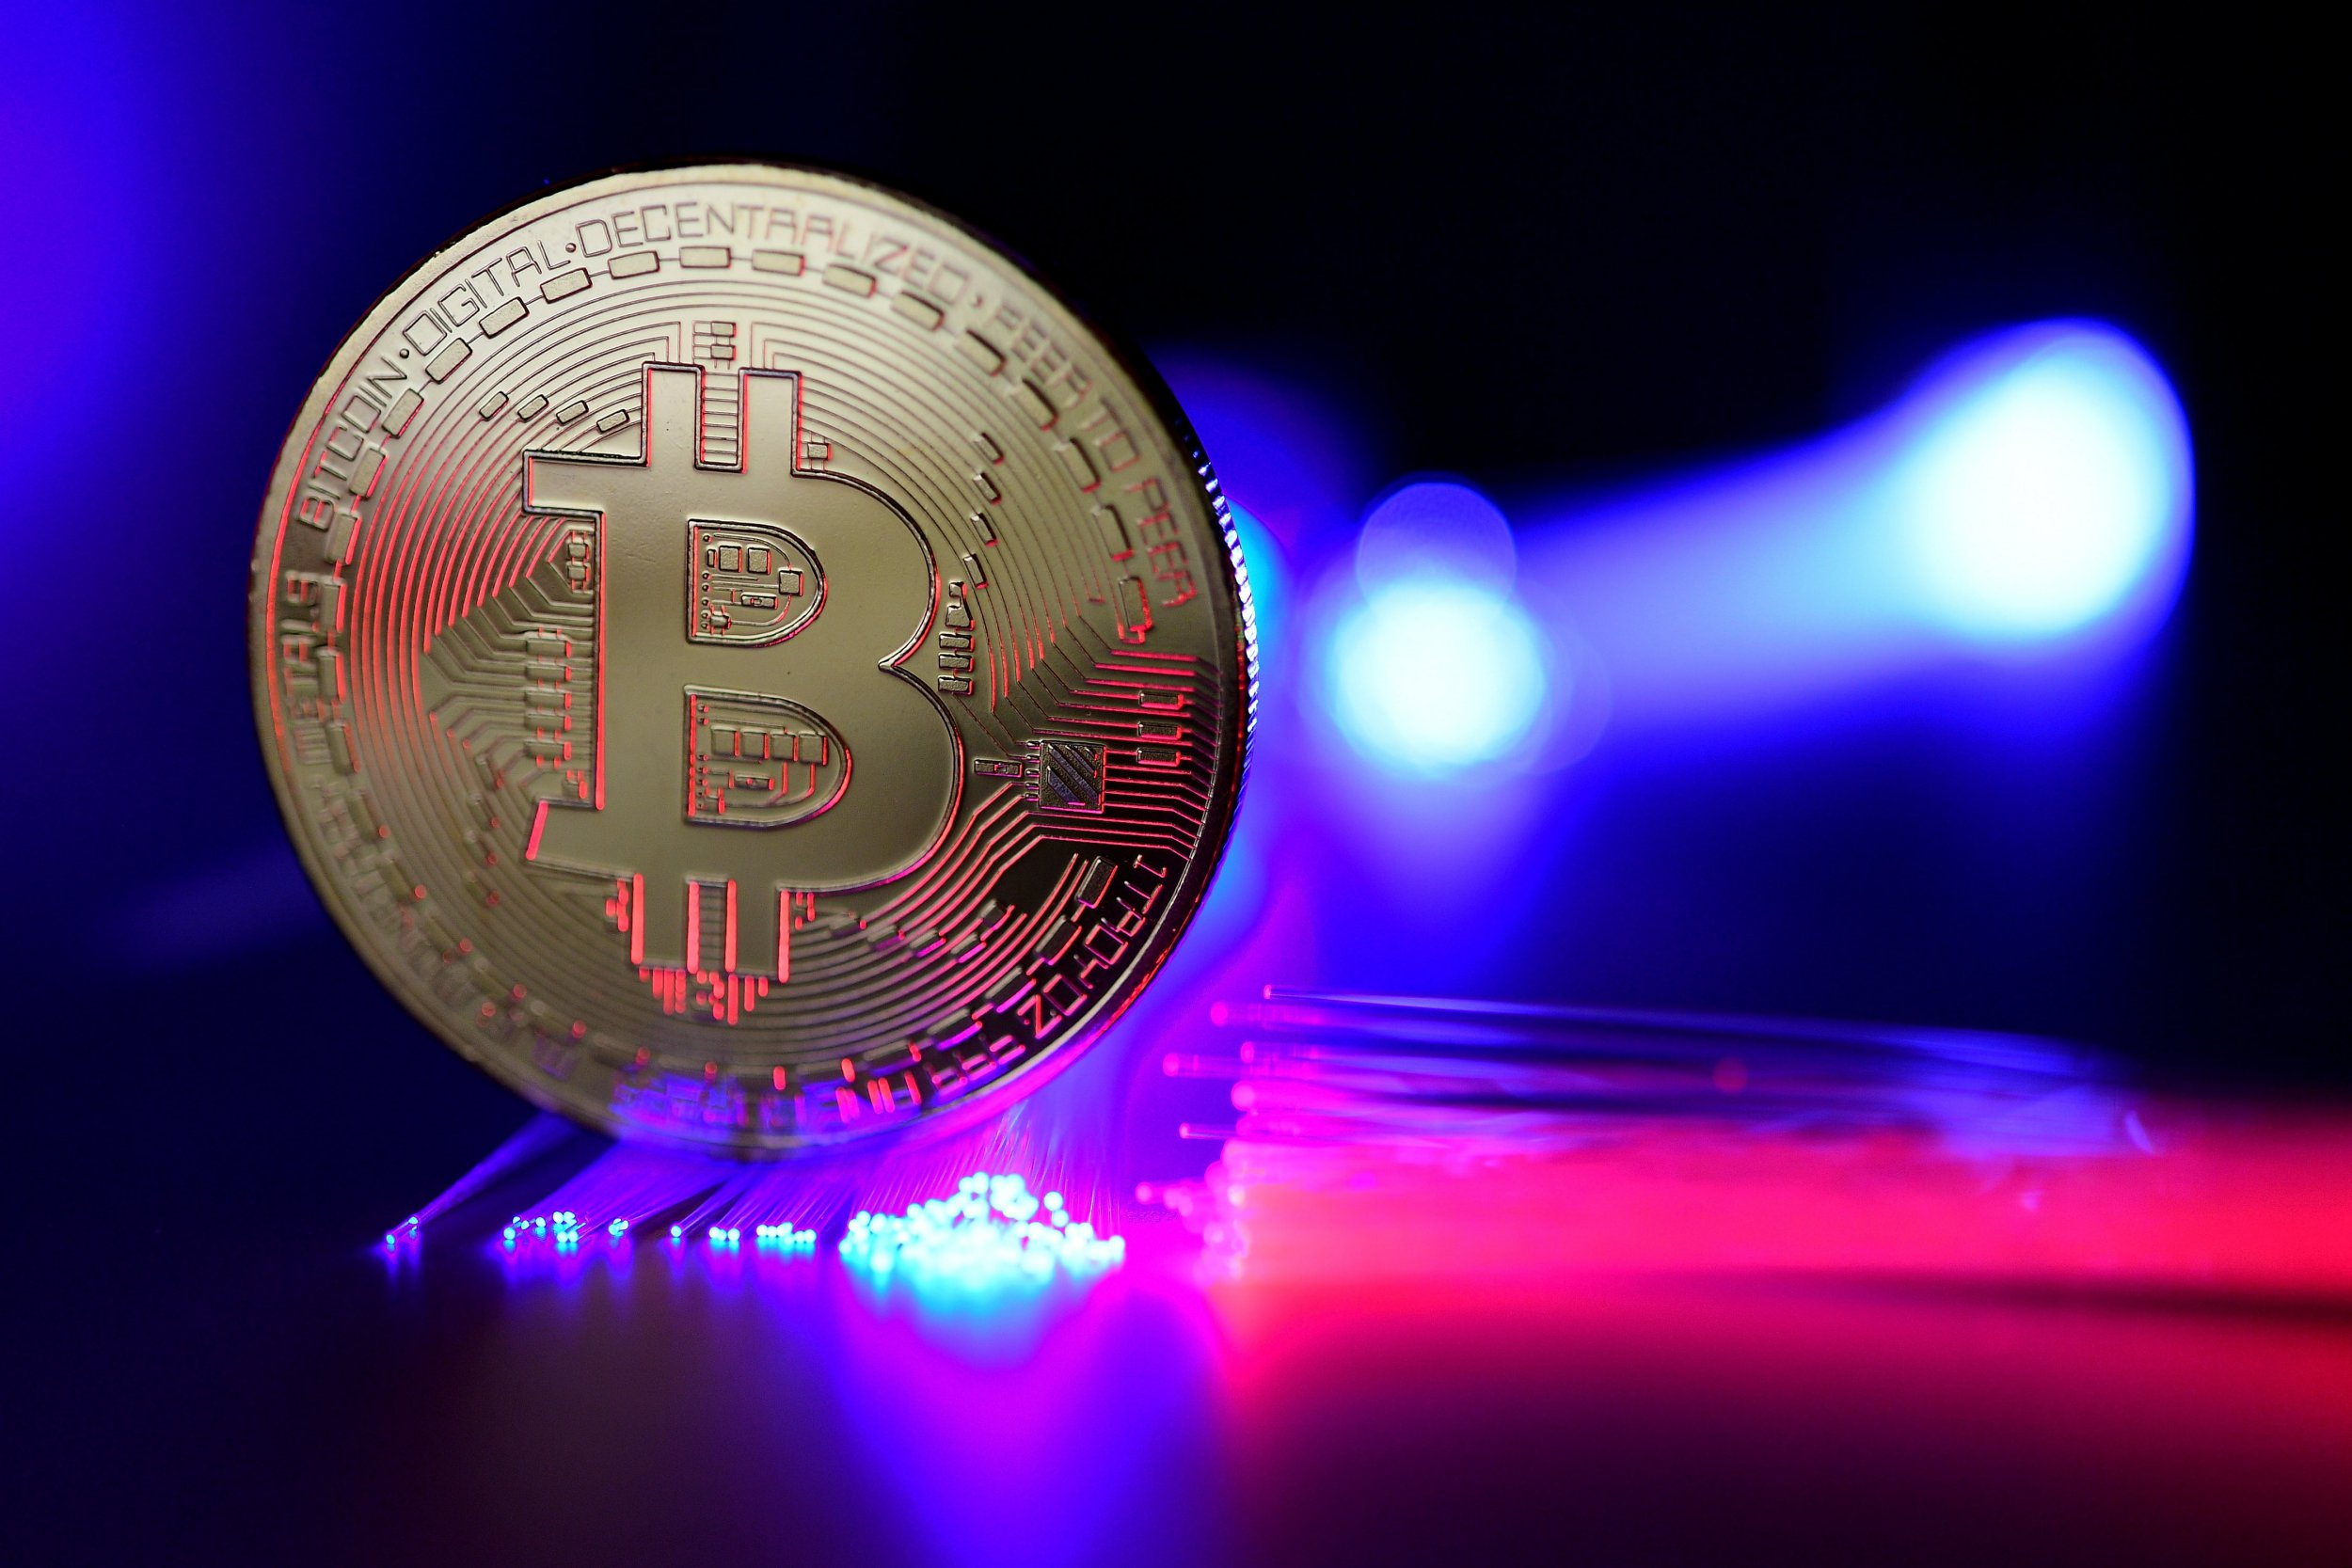 Bitcoin price drops below $10,000: Cryptocurrencies including Ethereum, Ripple and Litecoin nosedive